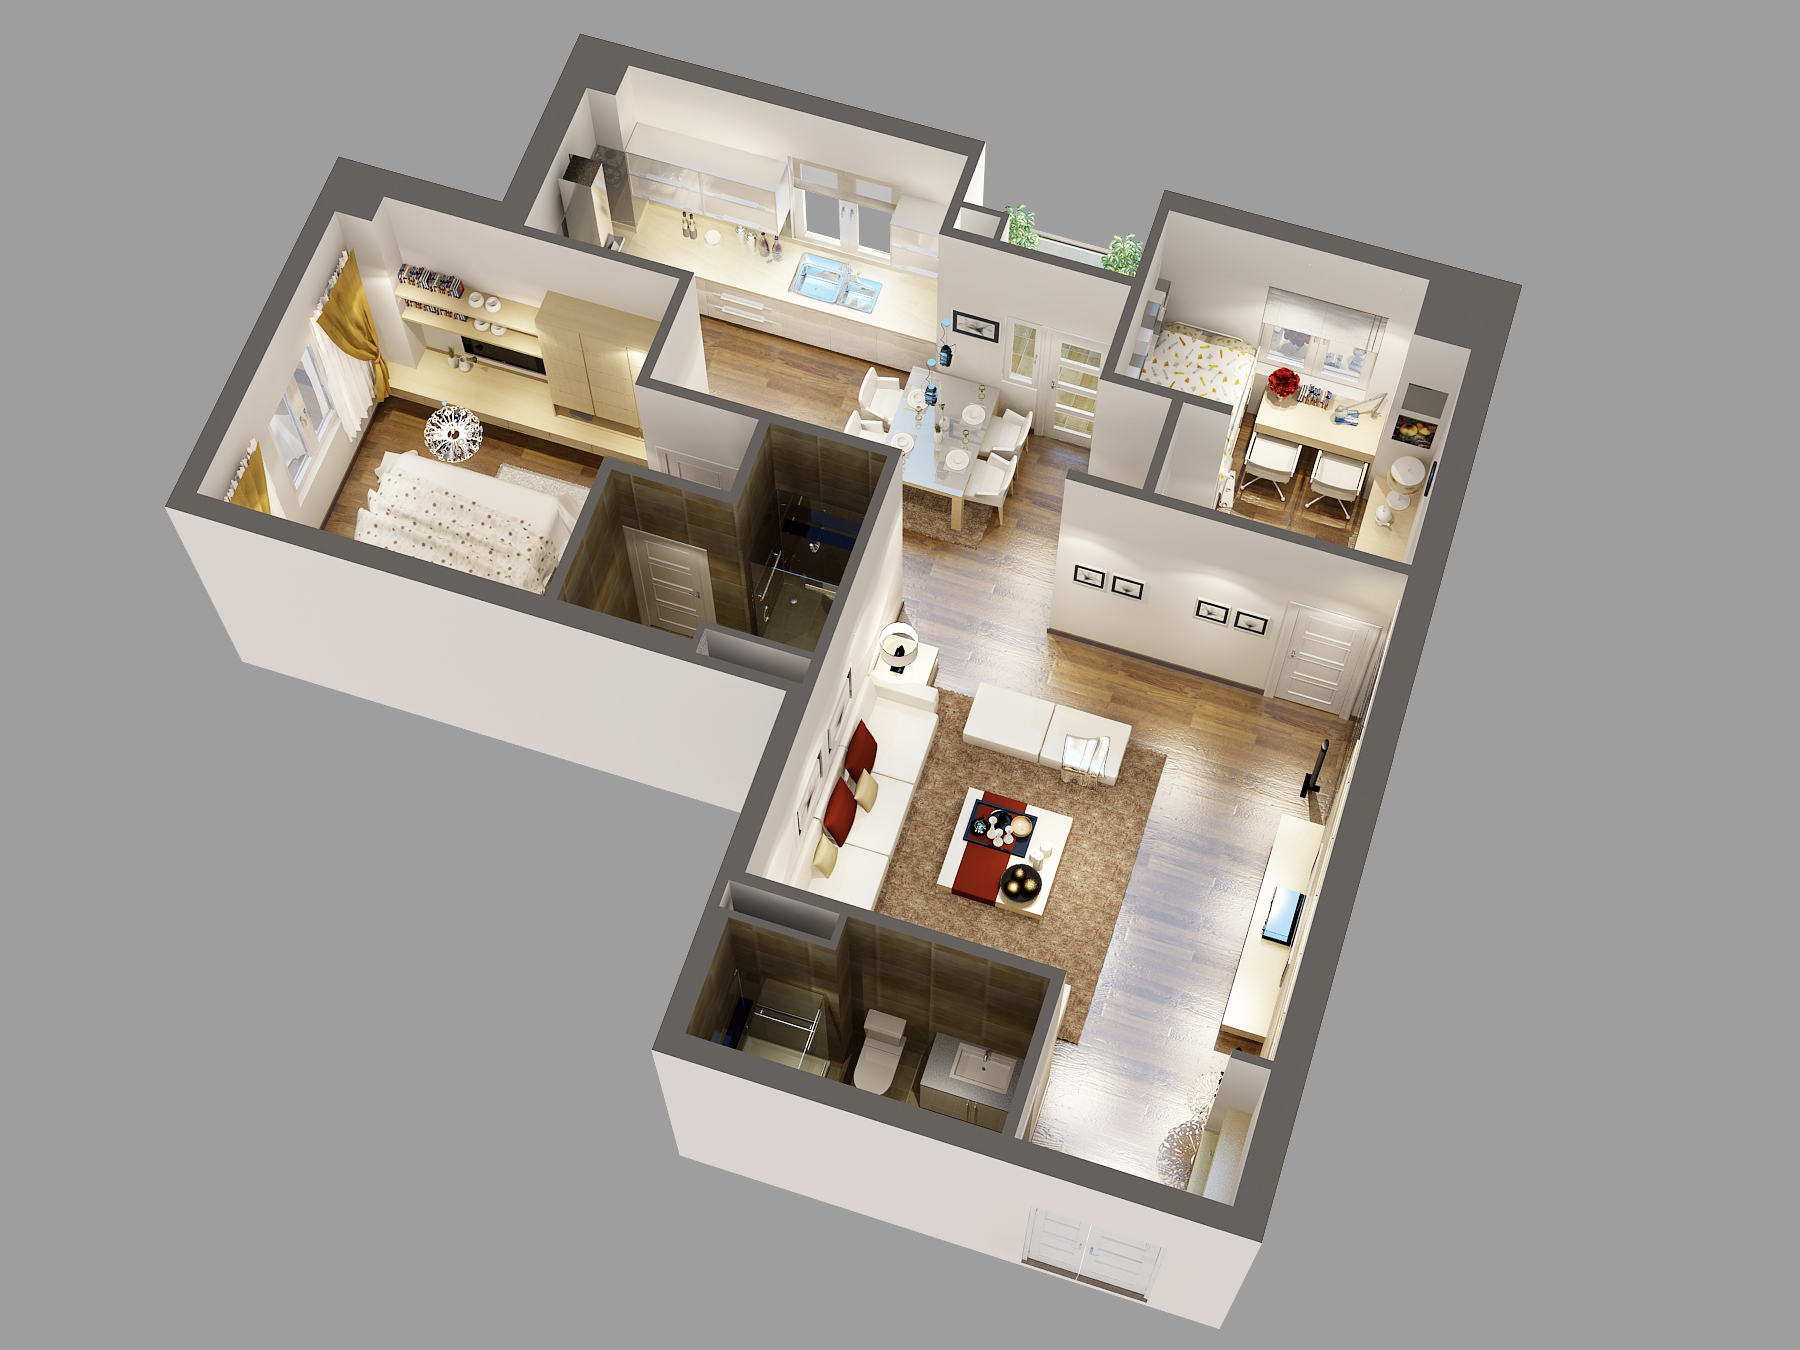 Detailed house cutaway 3d model 3d model max for New model house interior design